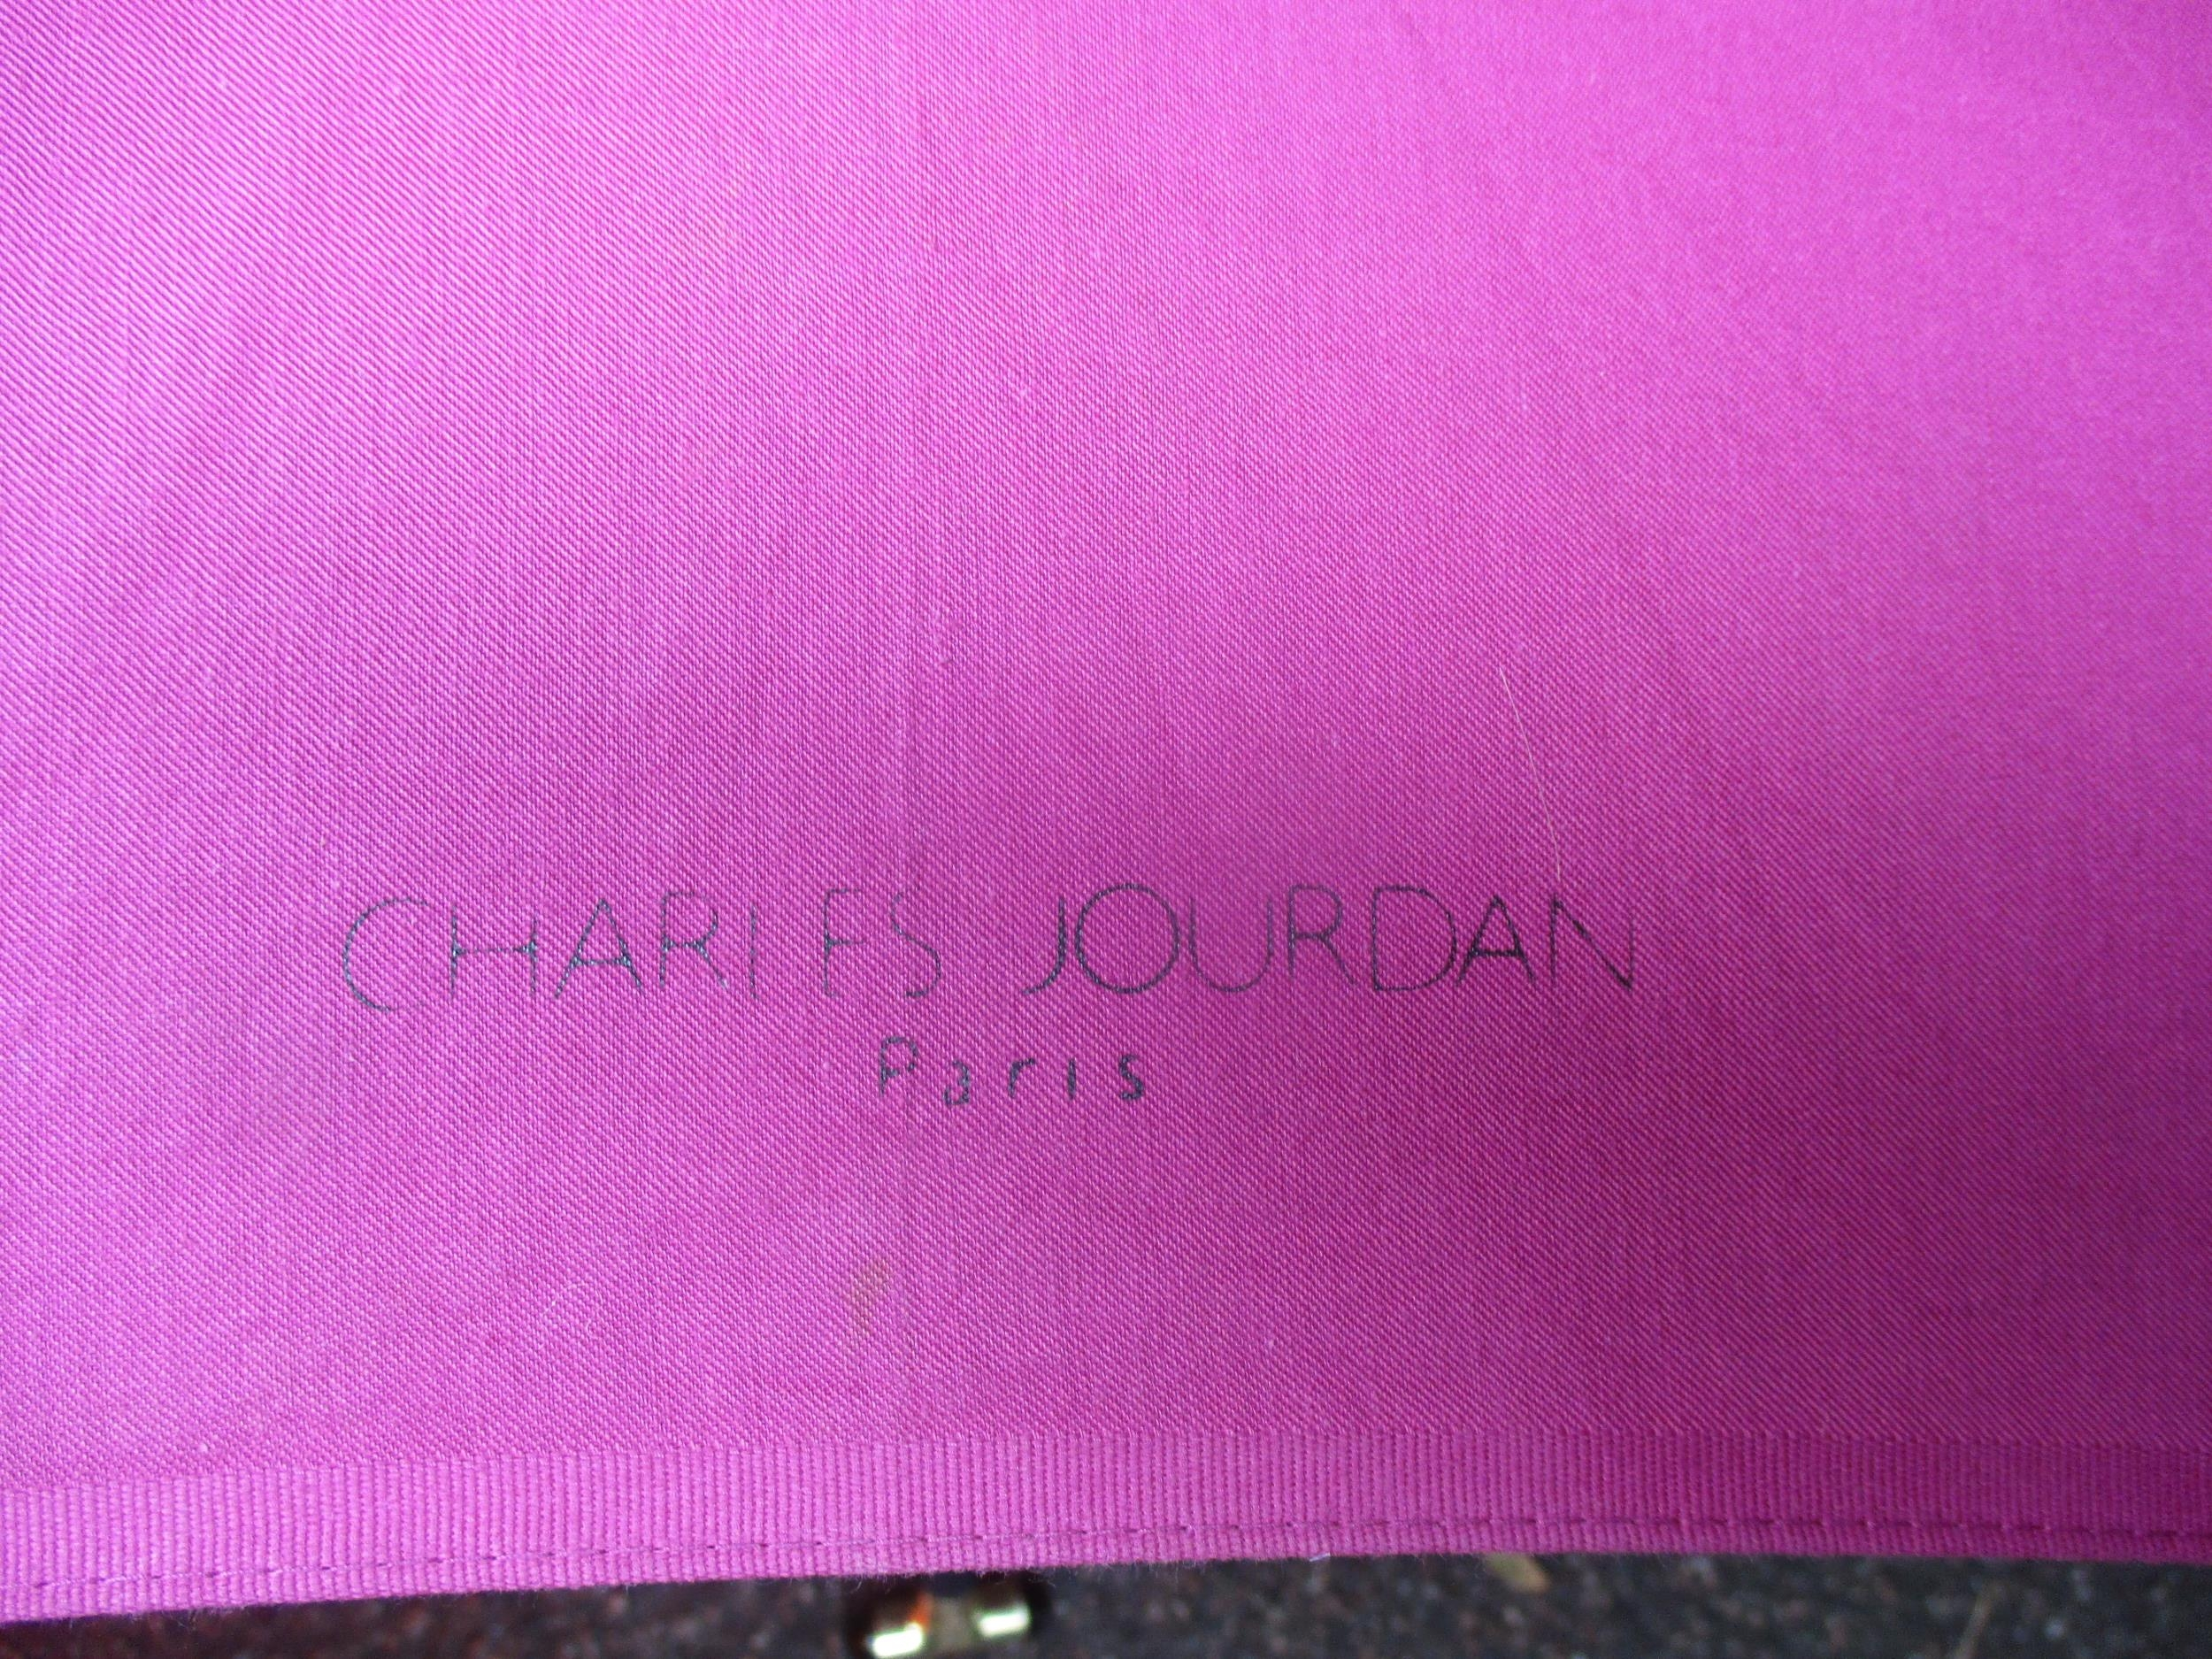 A Giorgio Armani branded umbrella and another by Charles Jourdan, together with a burnt orange - Image 3 of 5